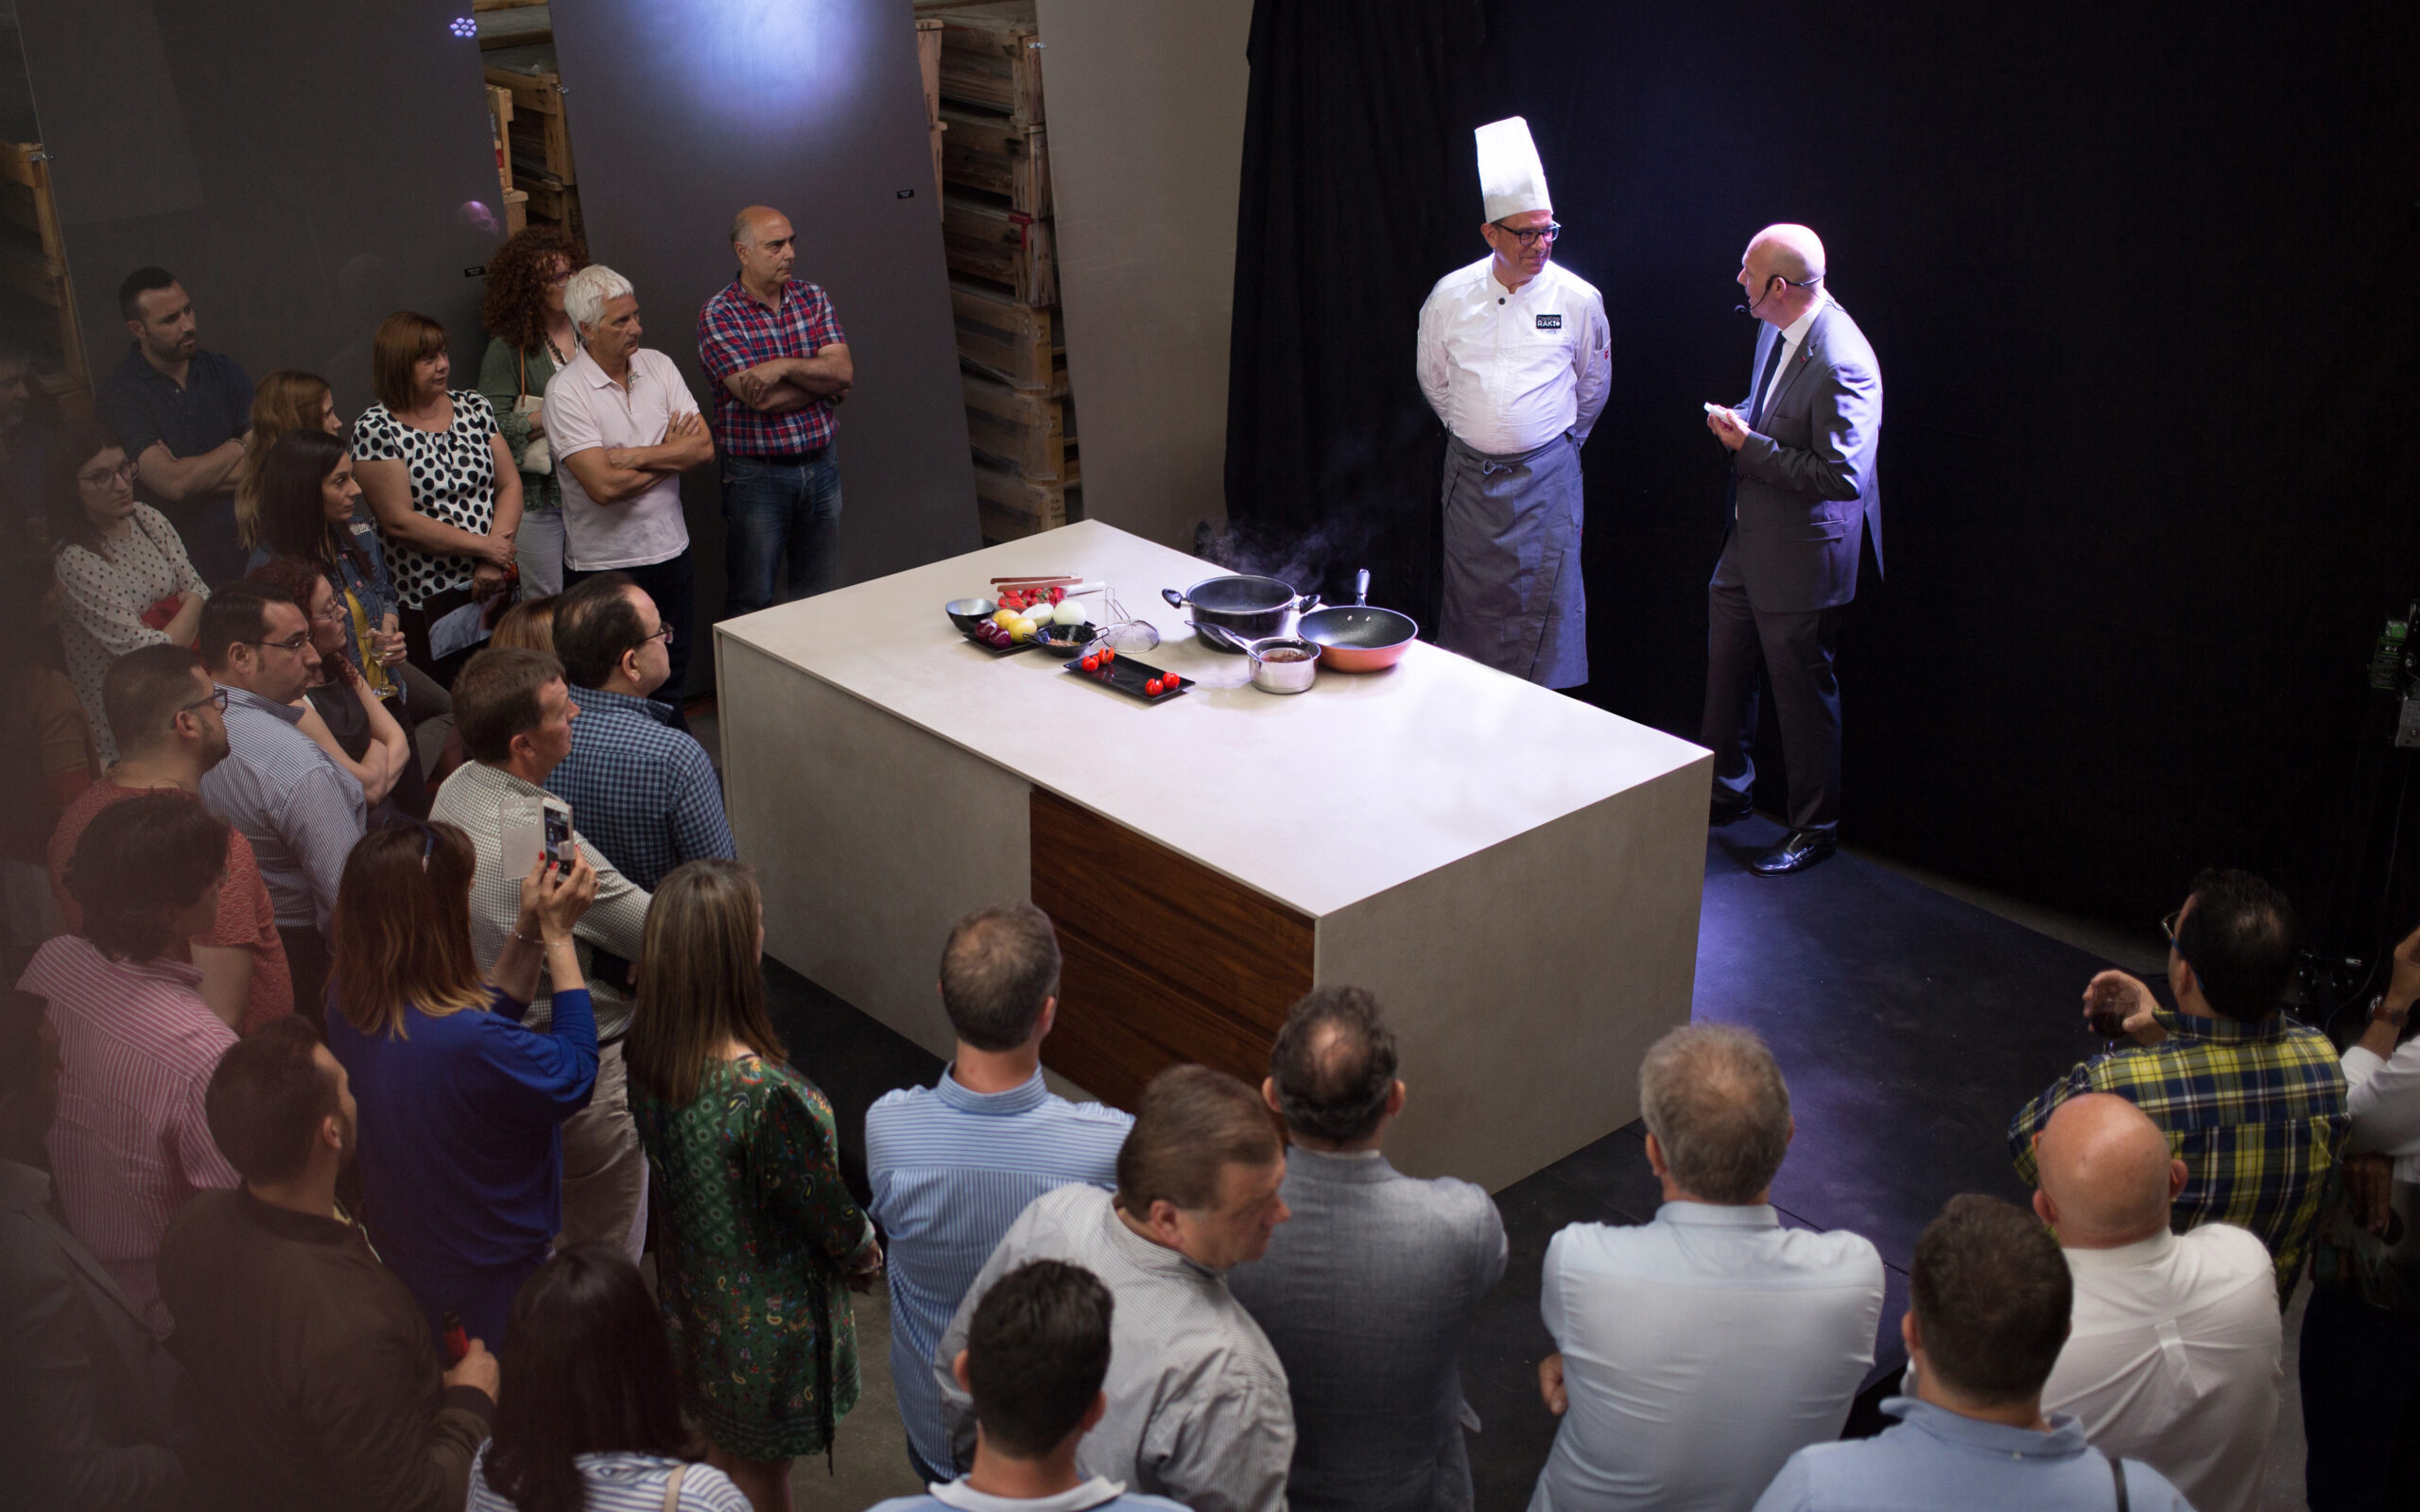 Francisco Hita Cooking Rak Smart Countertop Présentation